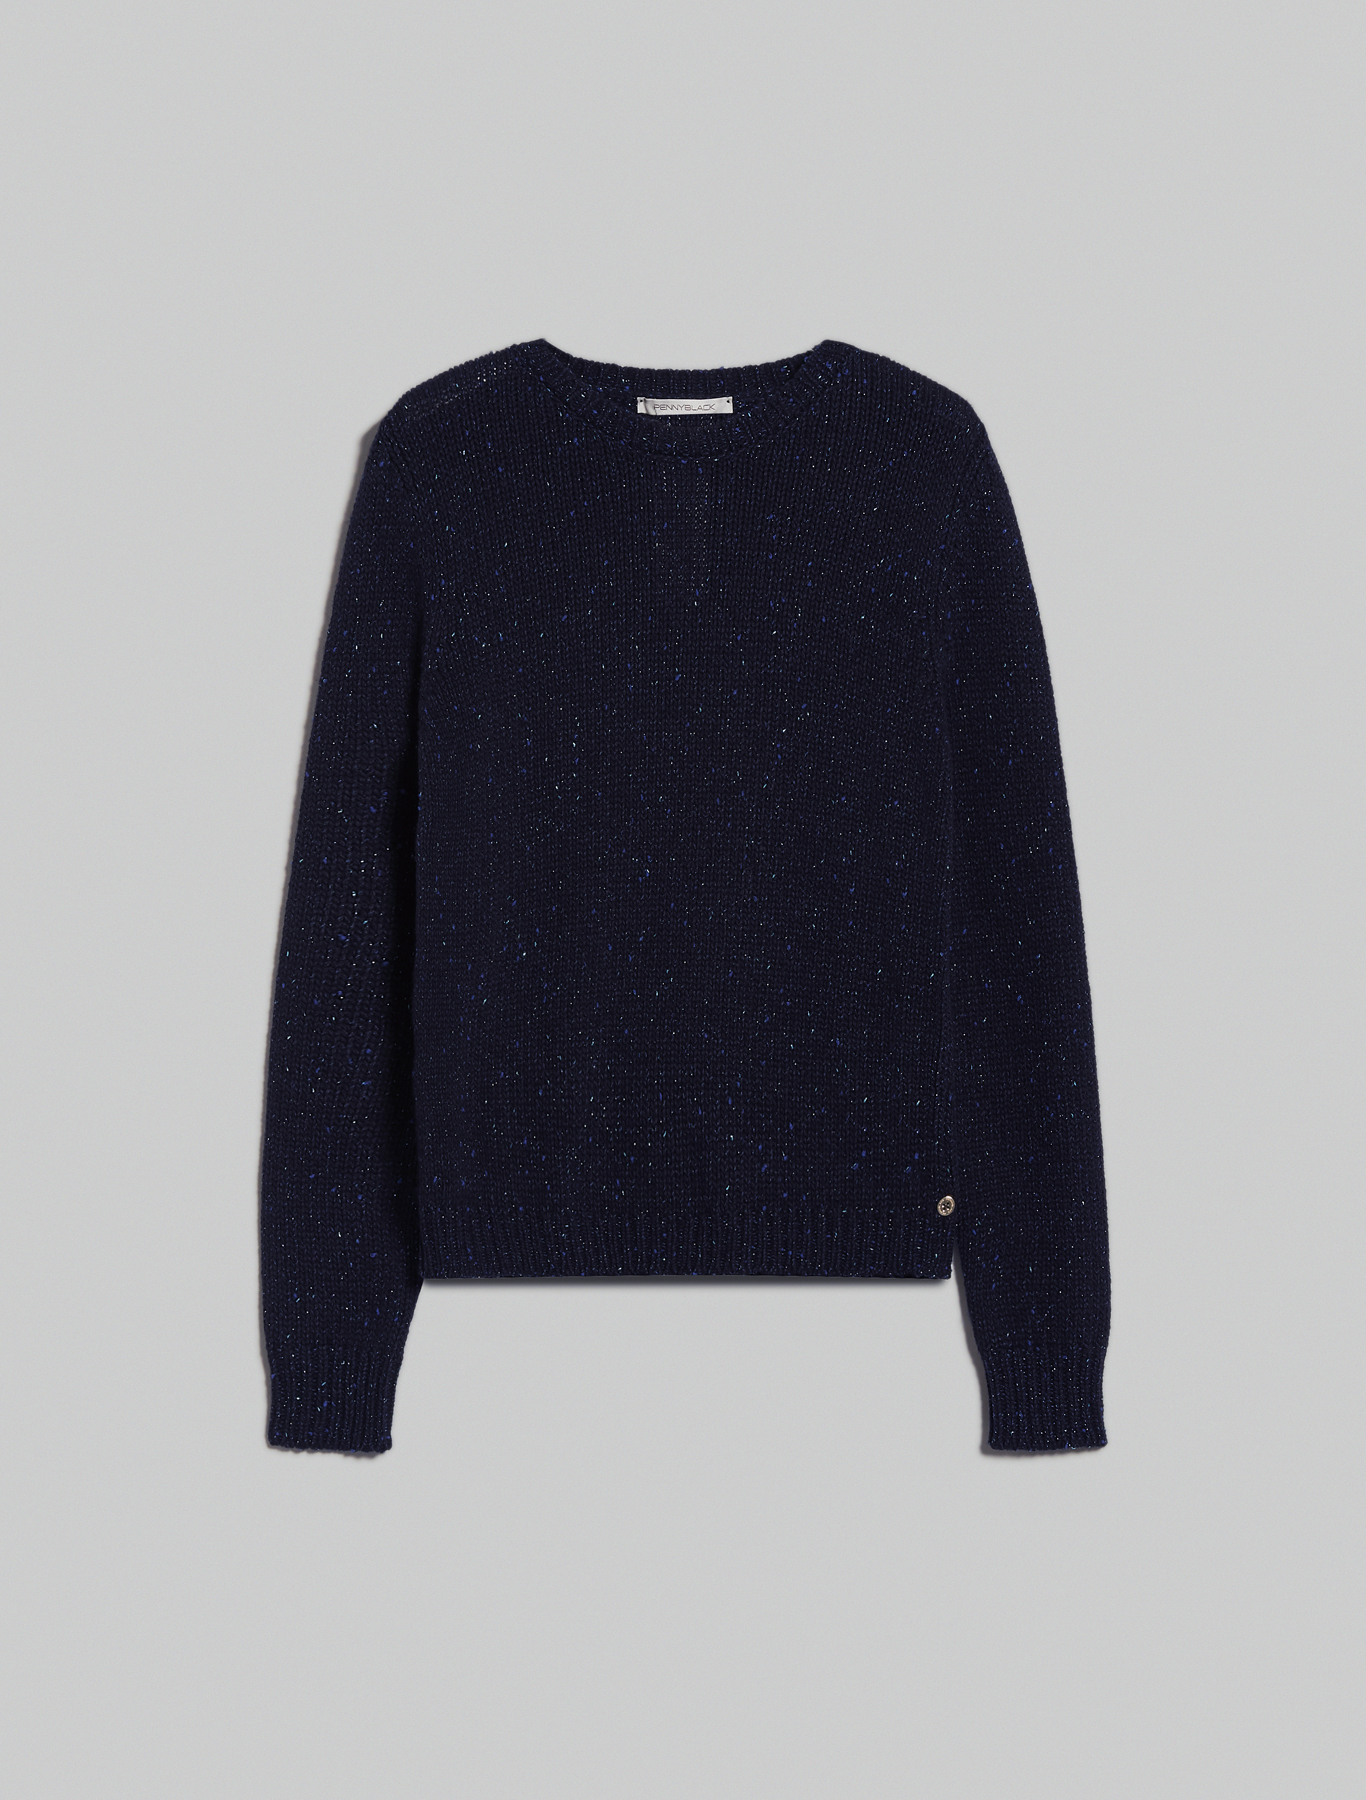 Crew neck lamé jumper - navy blue - pennyblack